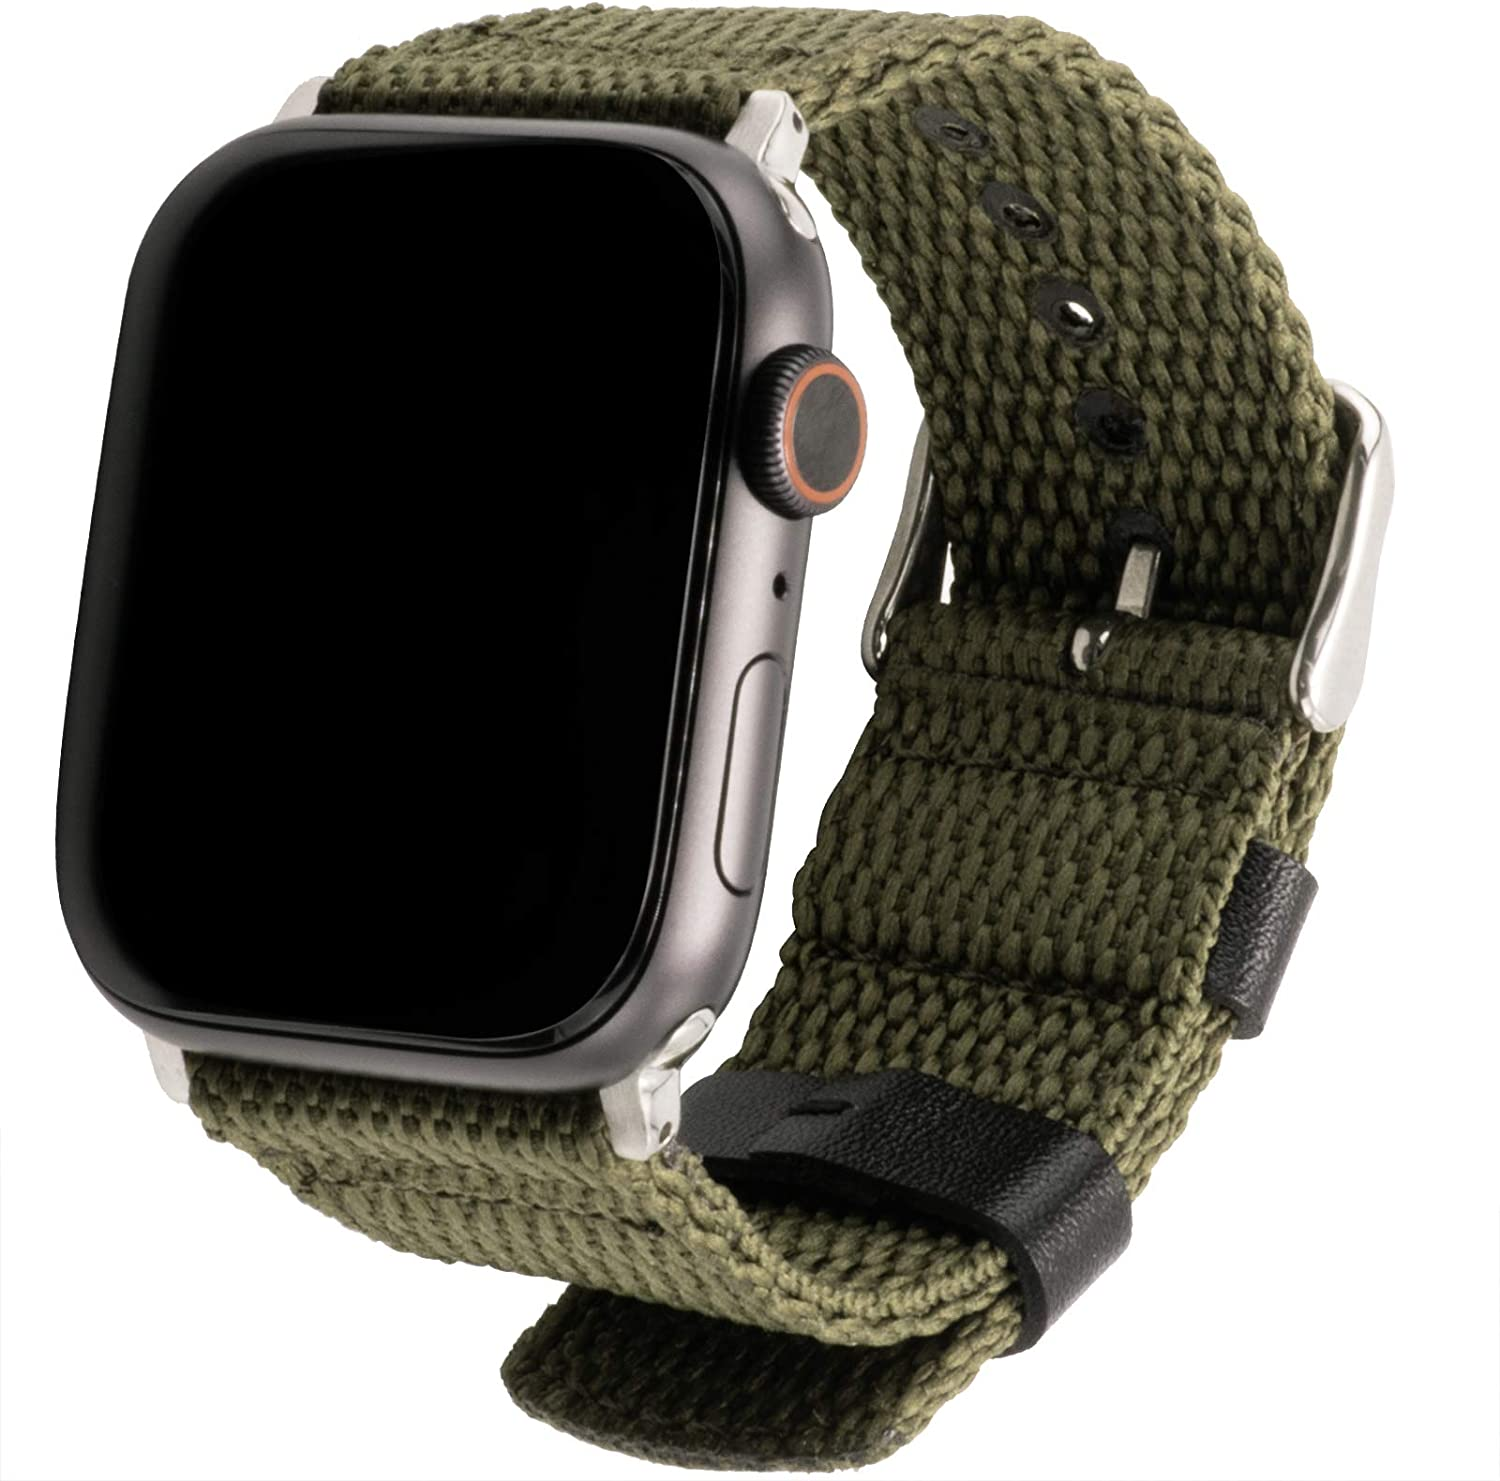 Nylon Bands Compatible with Apple Watch 42mm 44mm Quality Nylon Soft and Breathable Wristband Green Nylon Military Style Strap with Silver Buckle iWatch Series 6/5/4/3/2/1(Green)